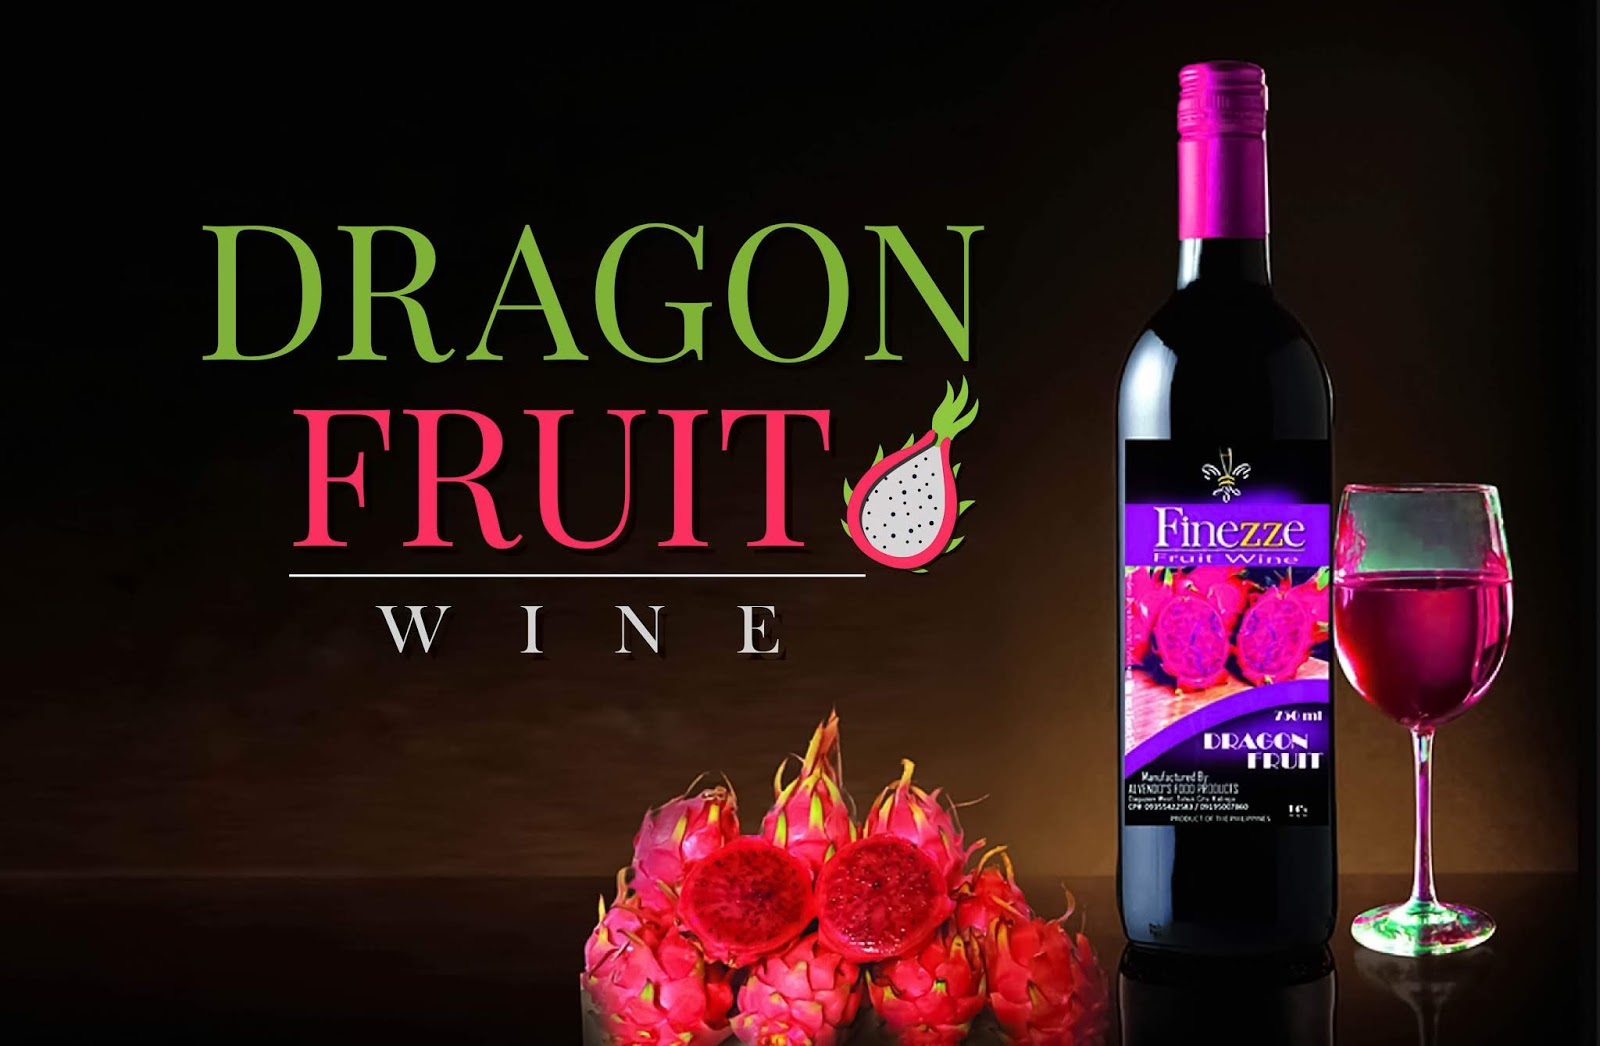 dragon fruit wine - finezze